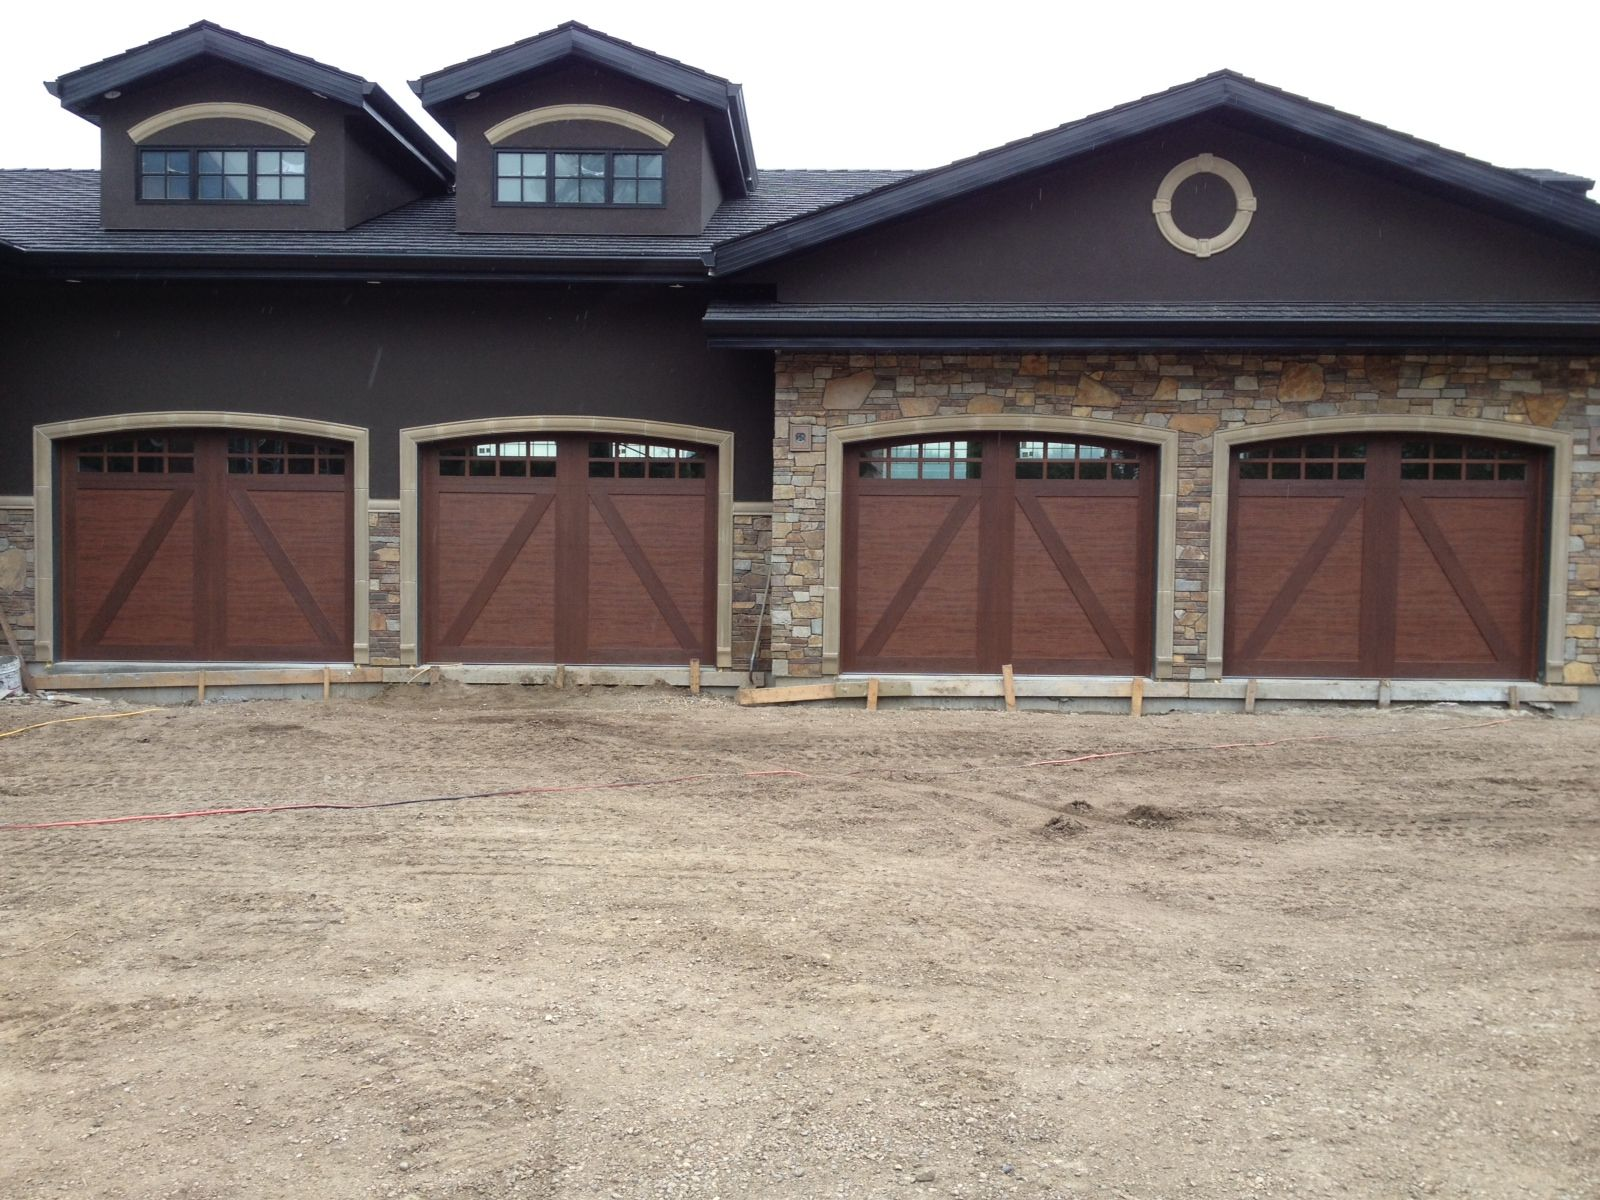 These Are The Clopay Canyon Ridge Ultra Grain Collection 10 X 8 Door In Walnut Finish With Ar Garage Doors Carriage Style Garage Doors Composite Garage Doors